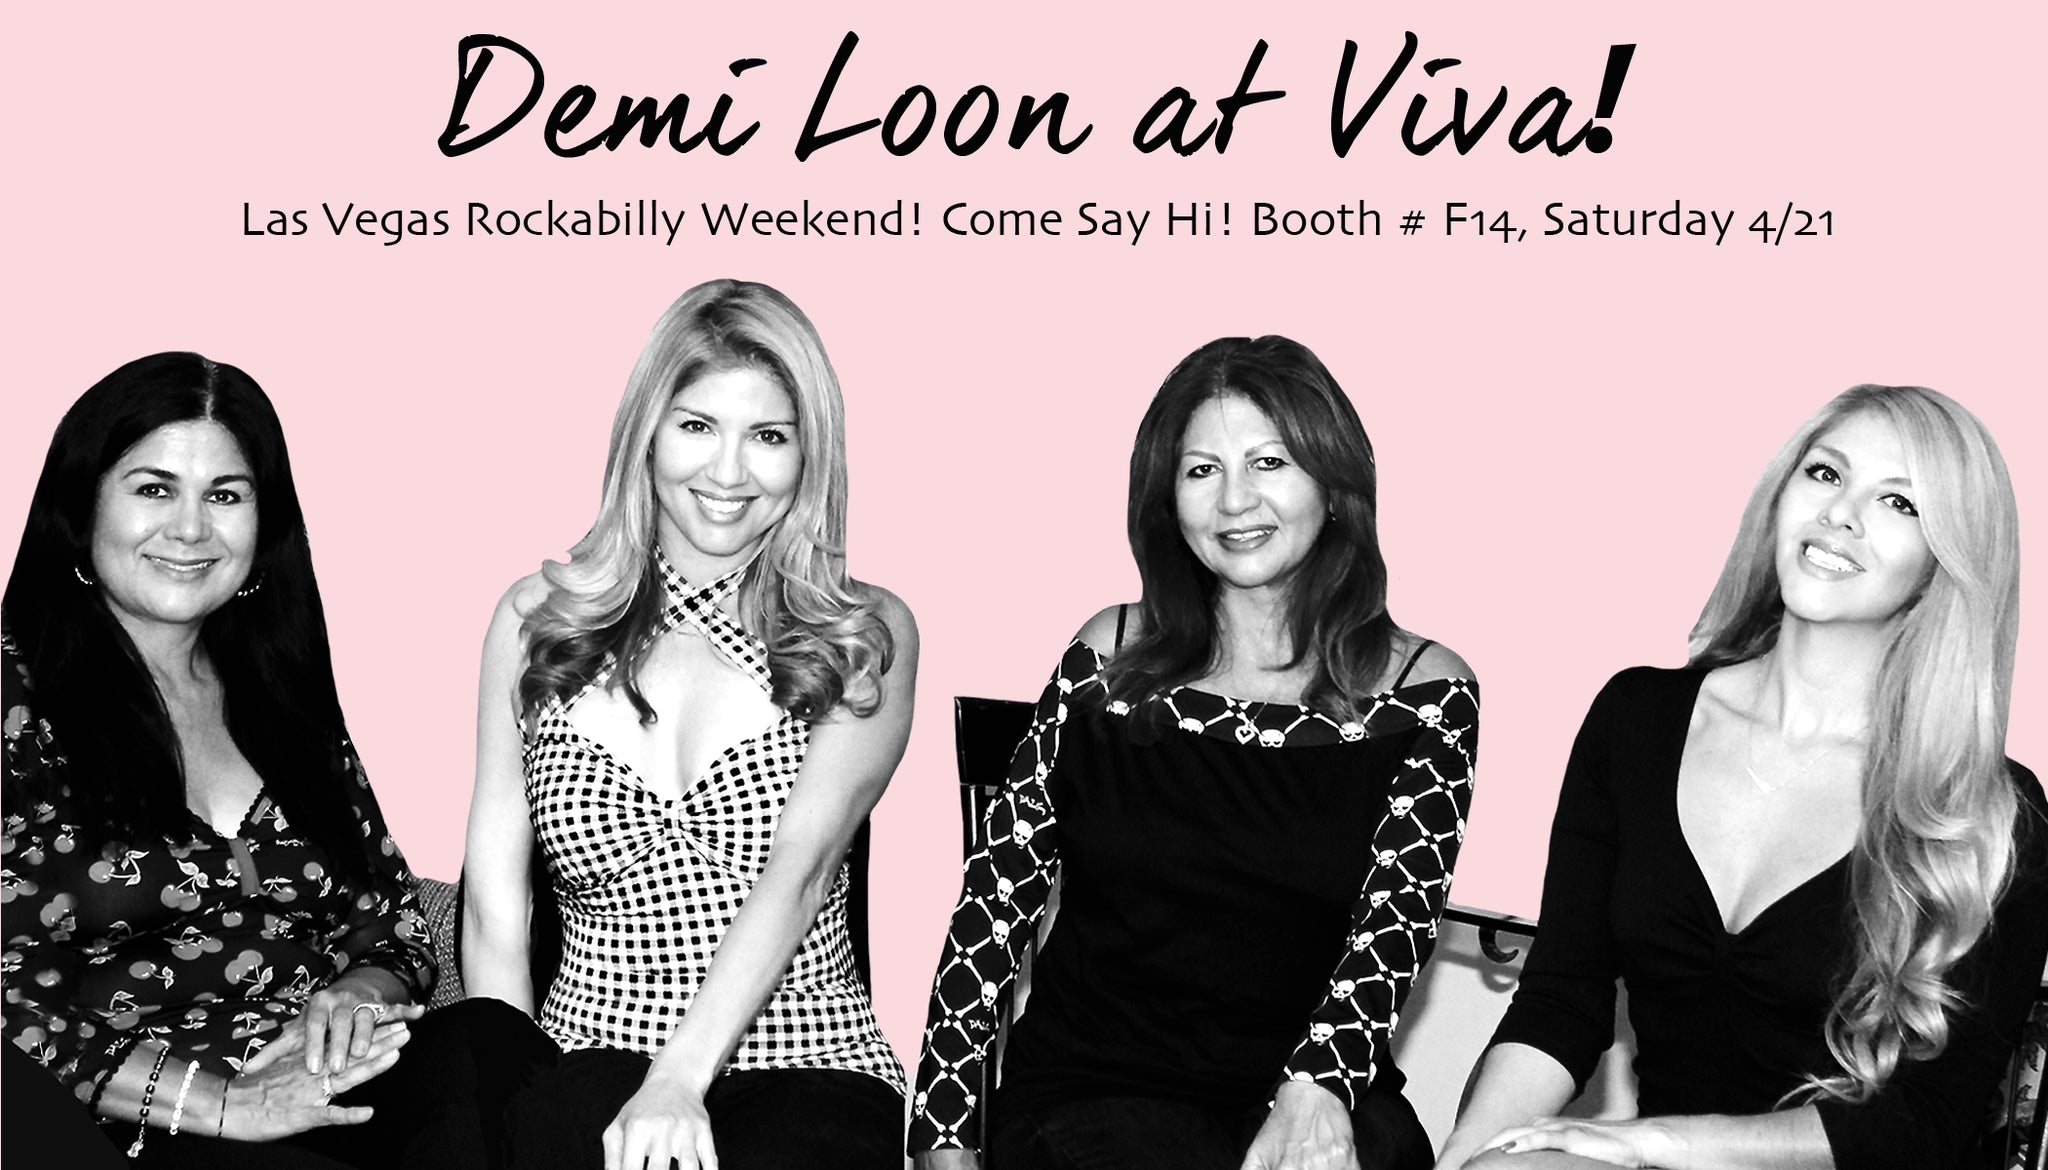 Viva las vegas rockabilly weekend Demi Loon Pinup clothing